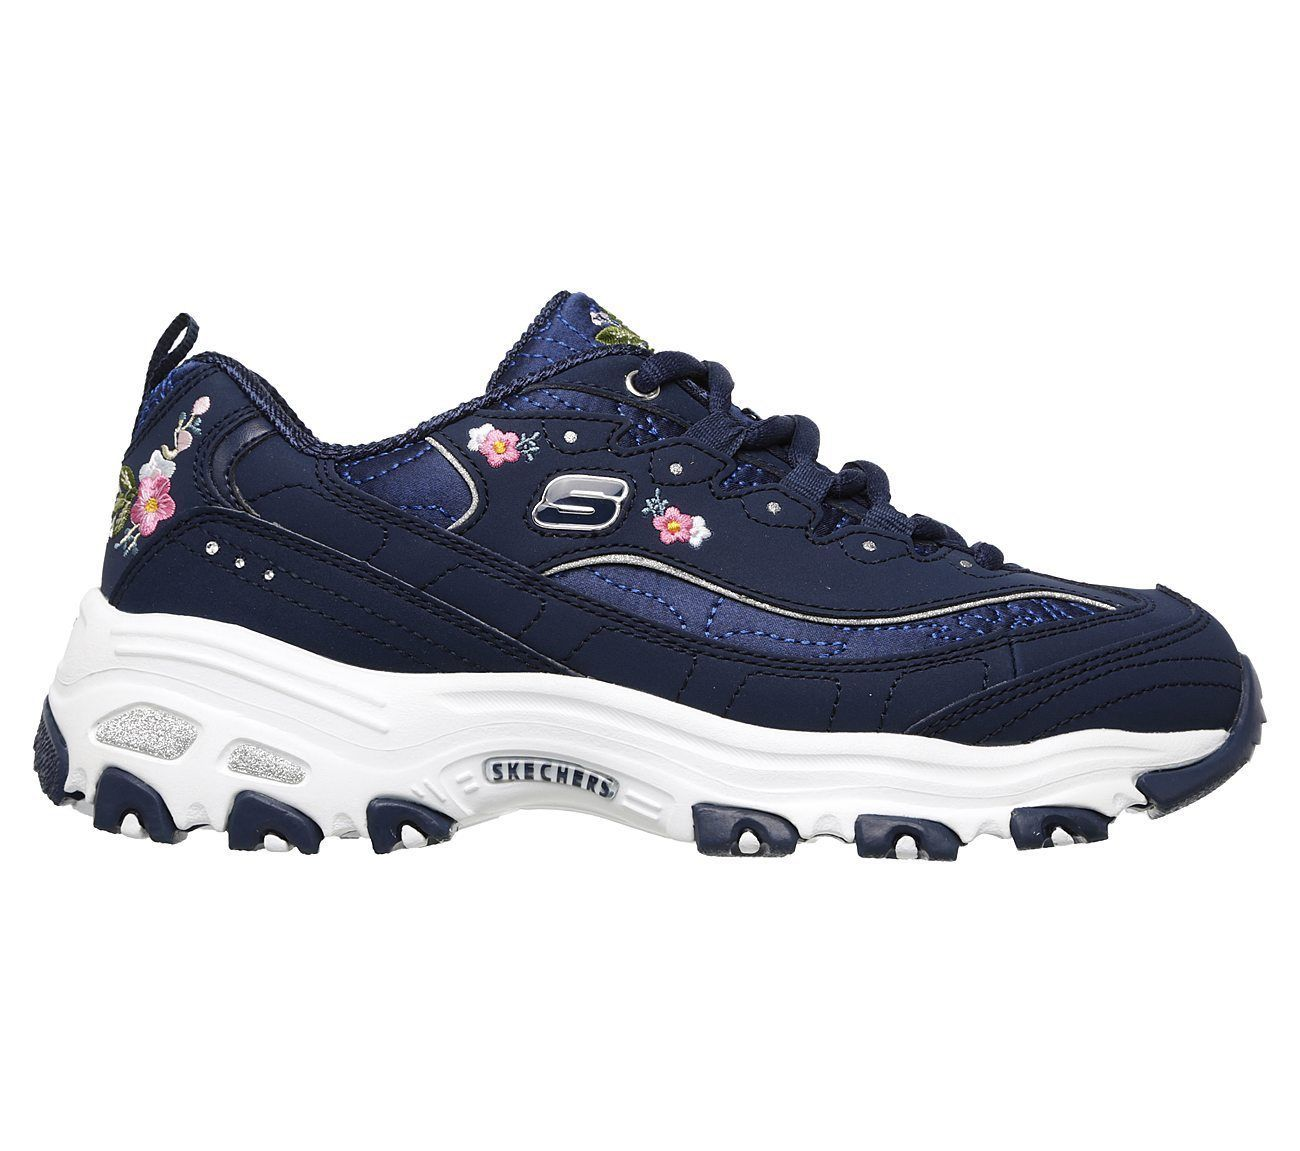 11977 Navy Dlites Skechers Shoes Women Sporty Casual Comfort Memory Foam Floral image 2